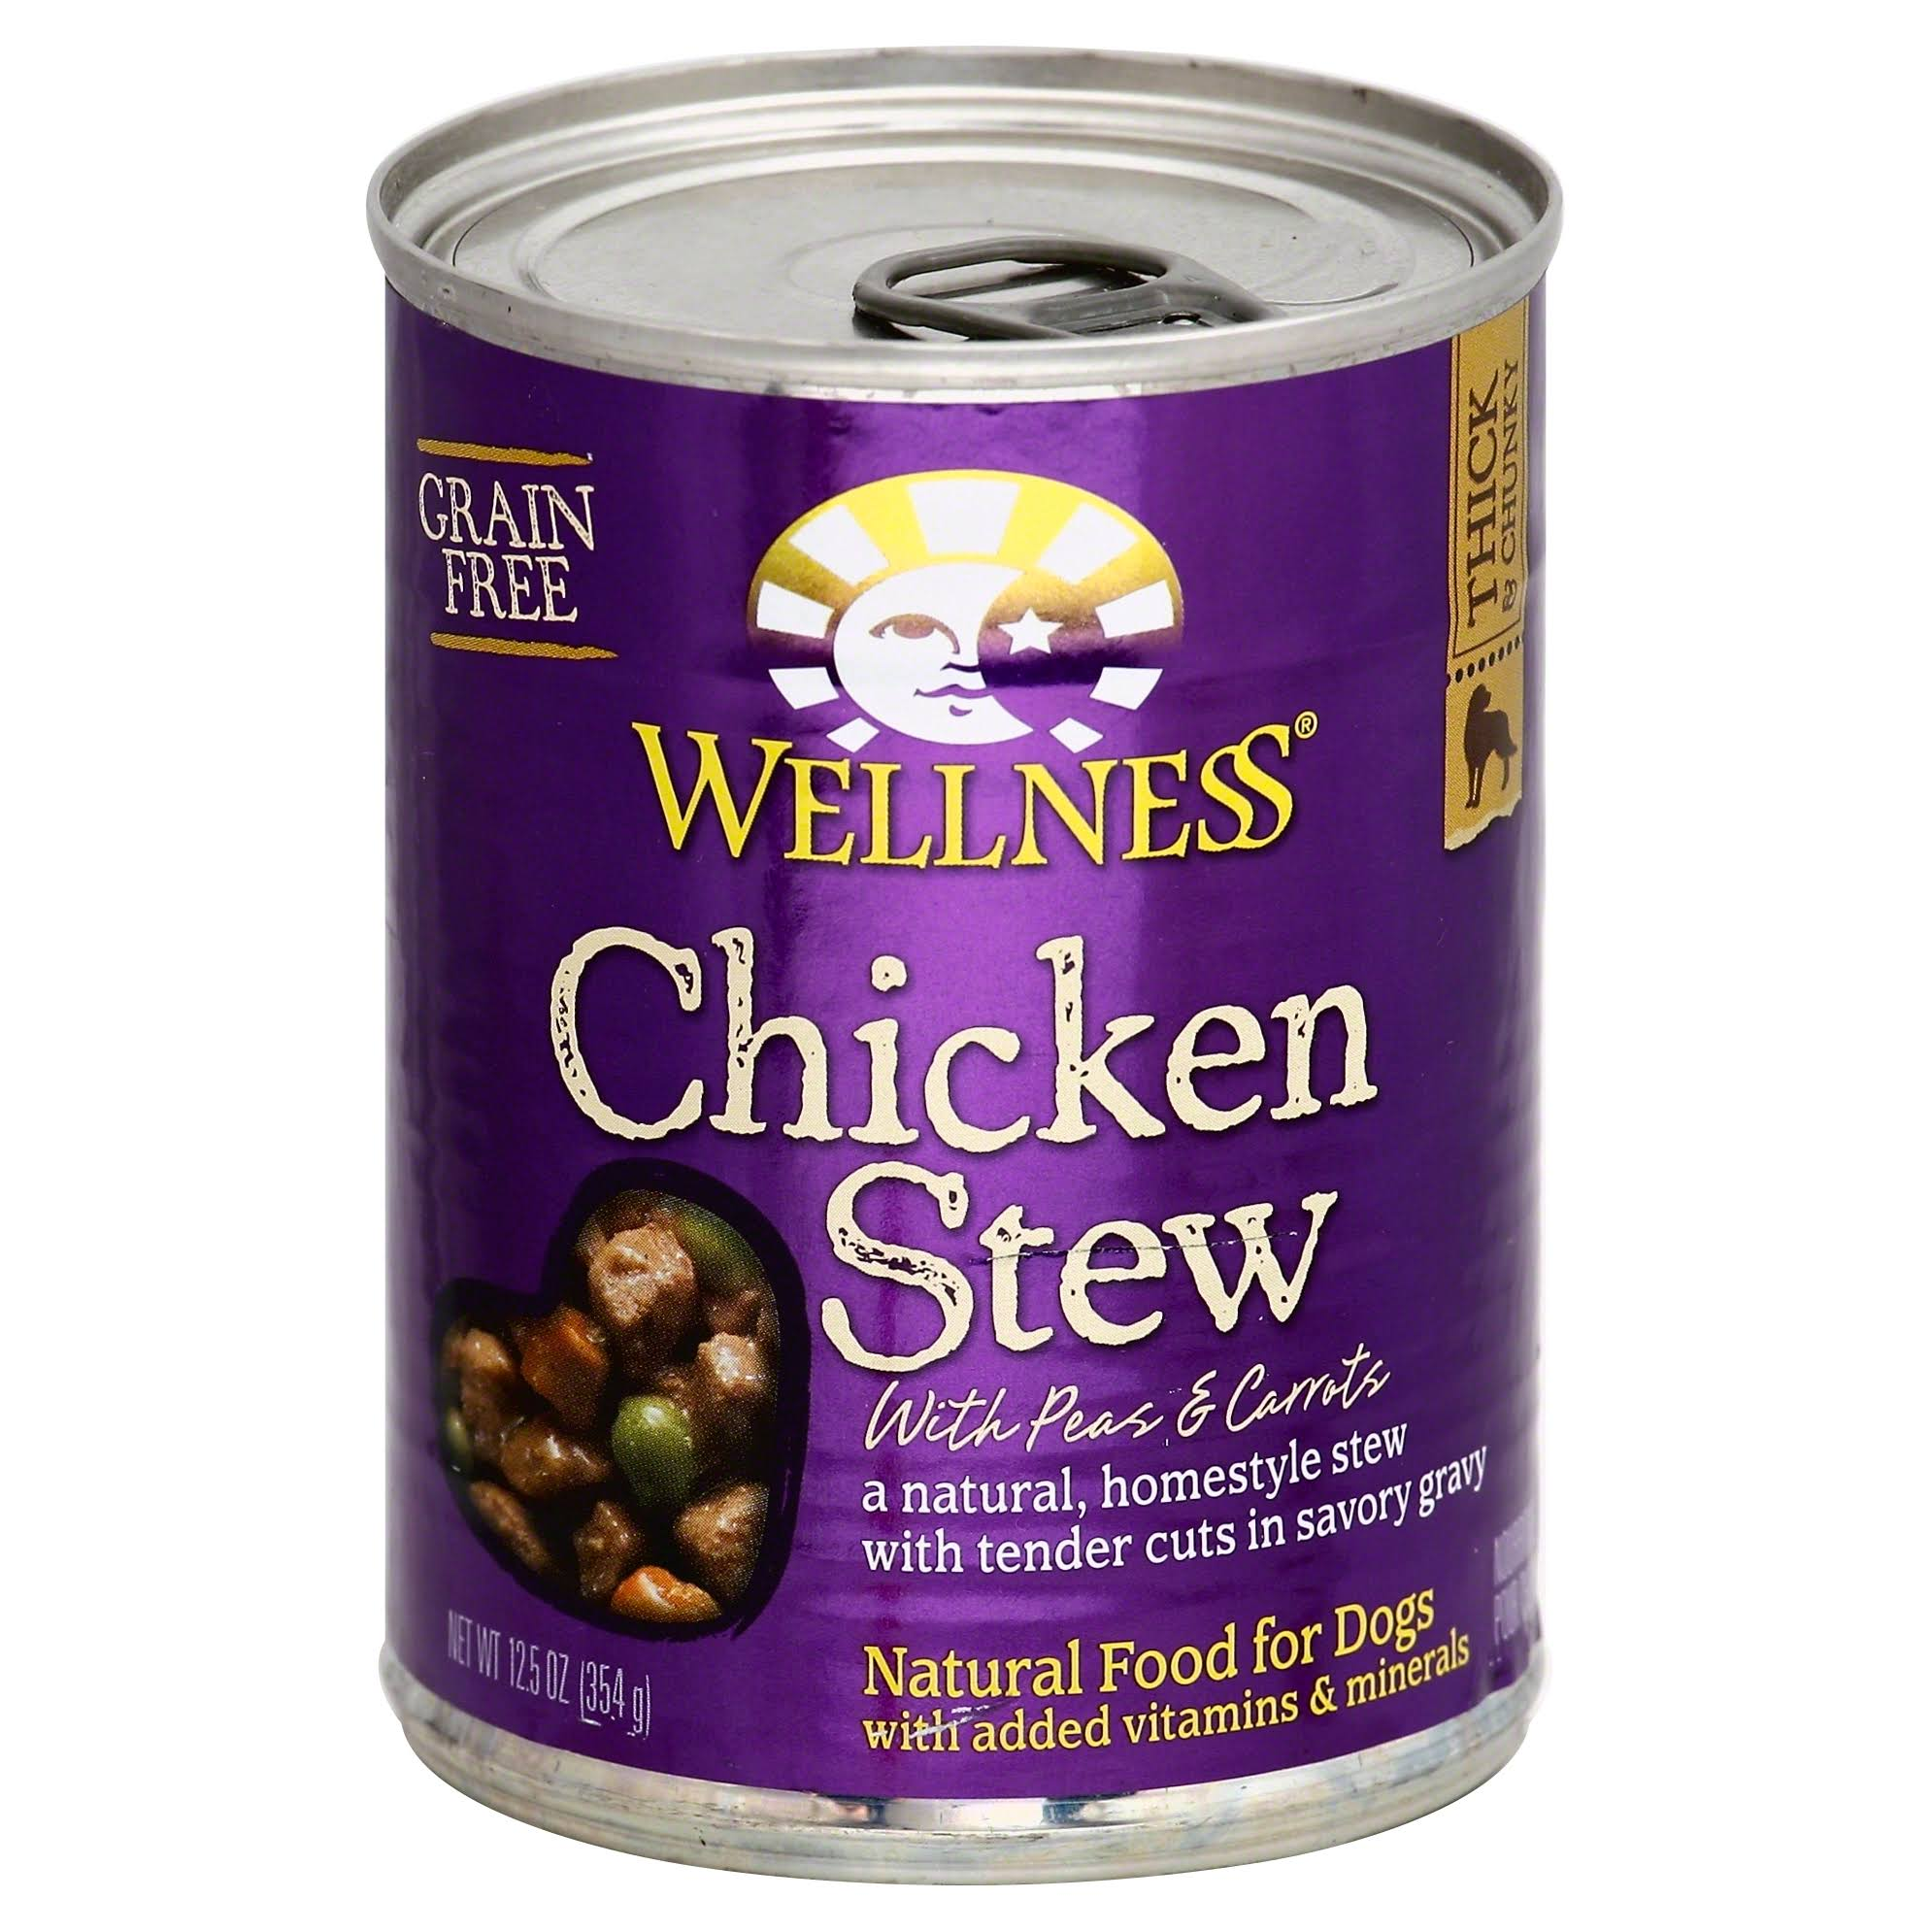 Wellness Grain-Free Chicken Stew Canned Dog Food - 12.5 Oz